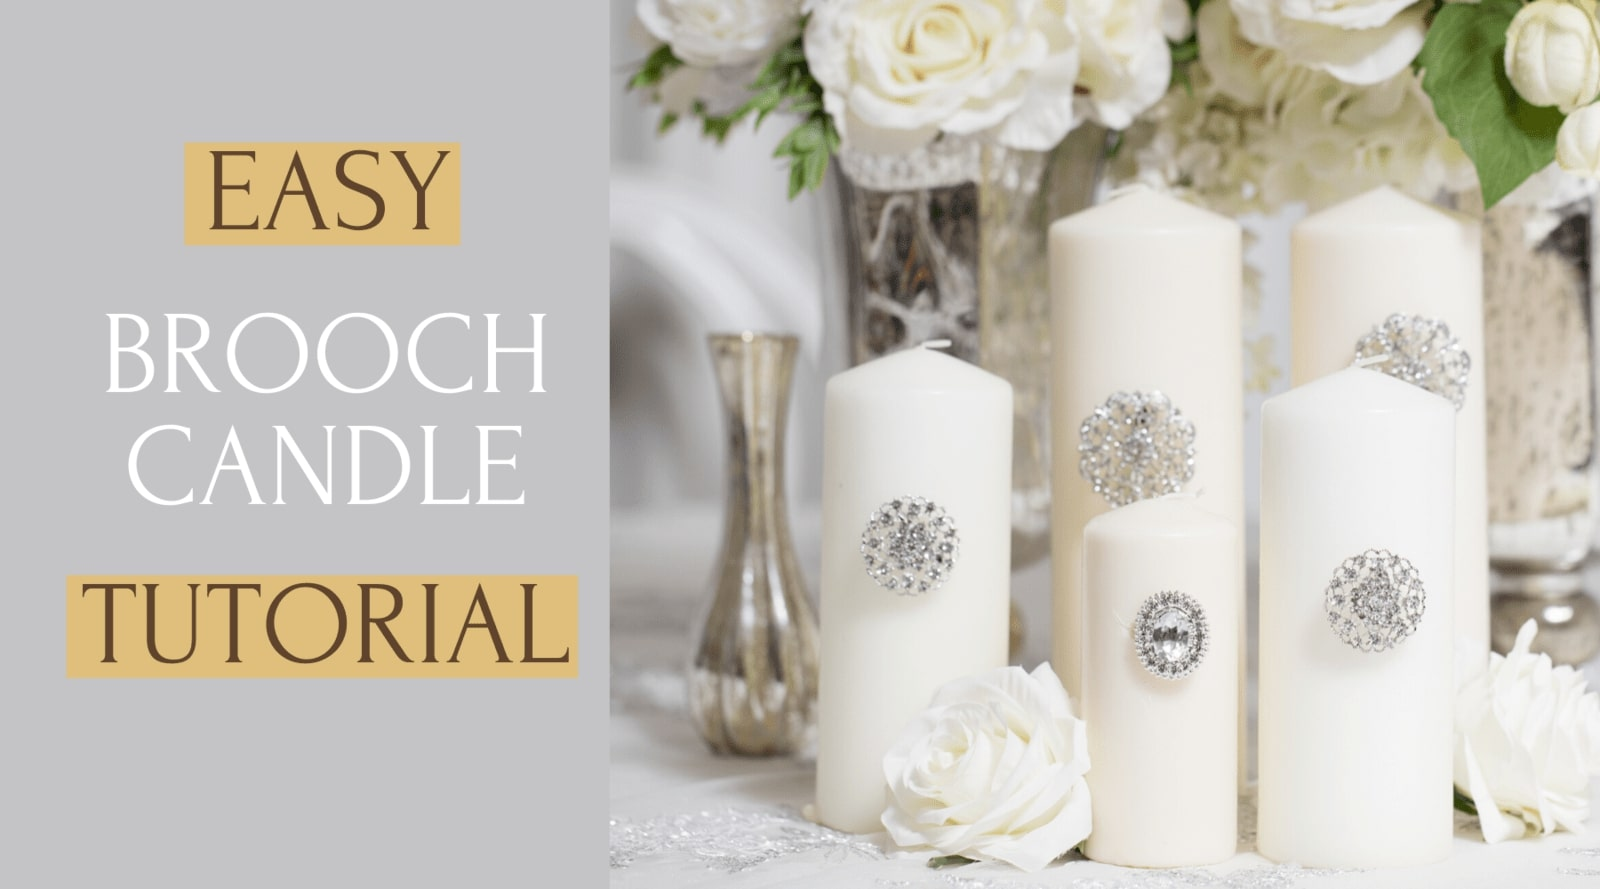 Easy Brooch Candle Tutorial